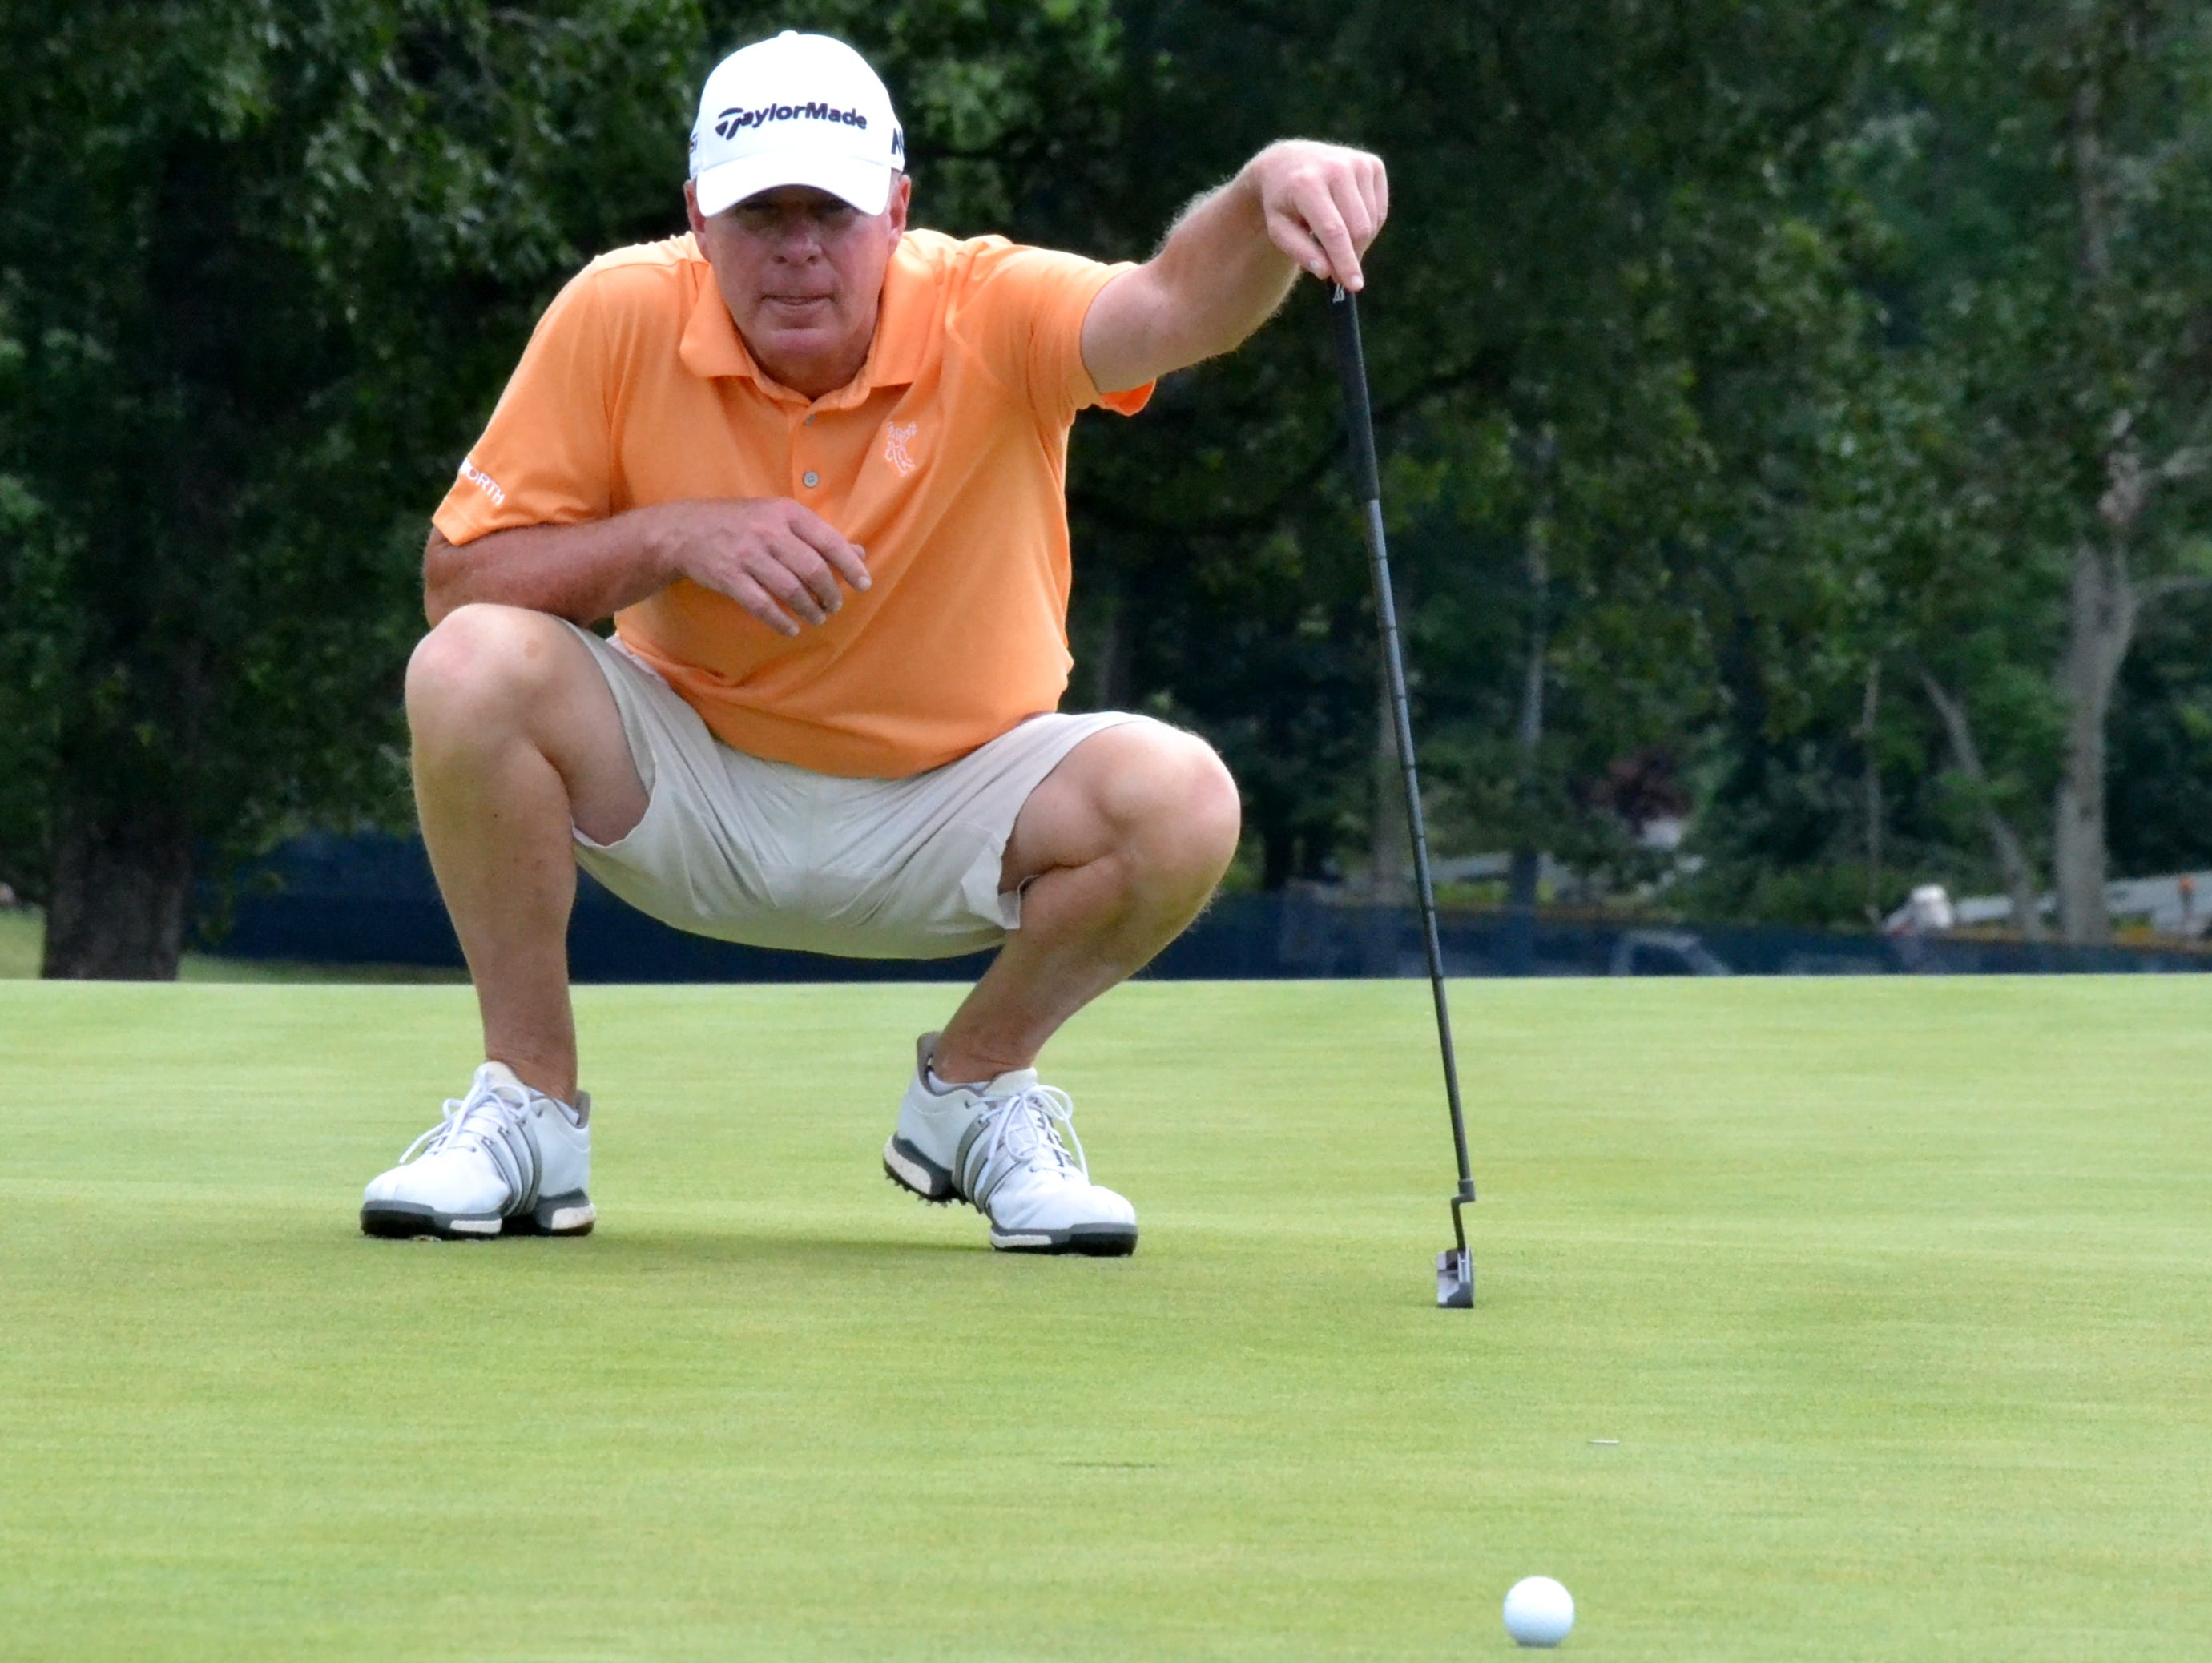 Deepdale member and Rye native George Zahringer III lines up a putt on the 17th green at Essex County Country Club on Monday during the opening round of the Ike Championship. He shot a 1-over 72 and withdrew, citing a health issue.